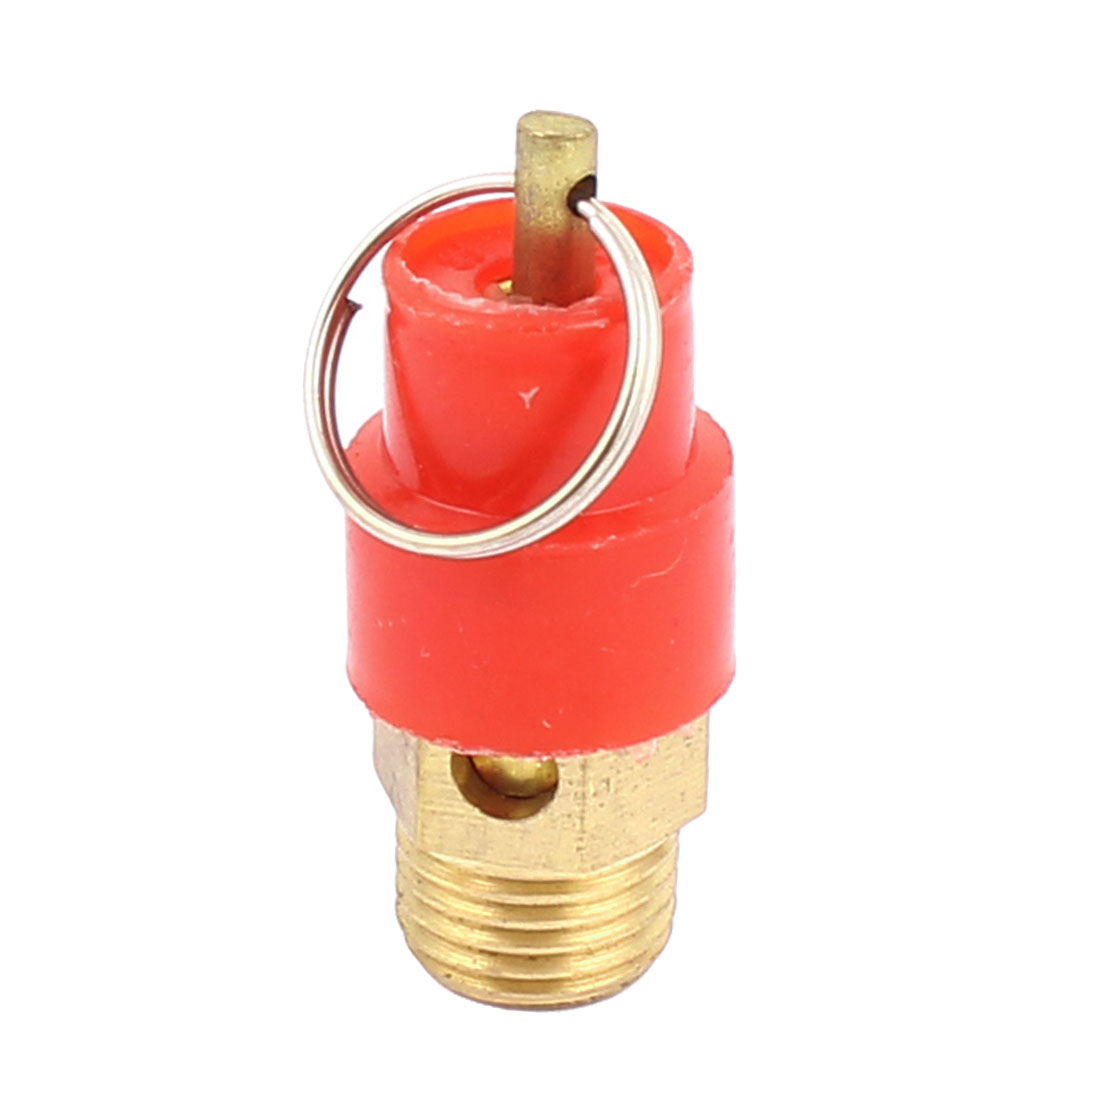 Air Compressor Metal Ring Pressure Relief Safety Valve Release Pneumatic Fitting Control Device 1/4BSP Male Thread